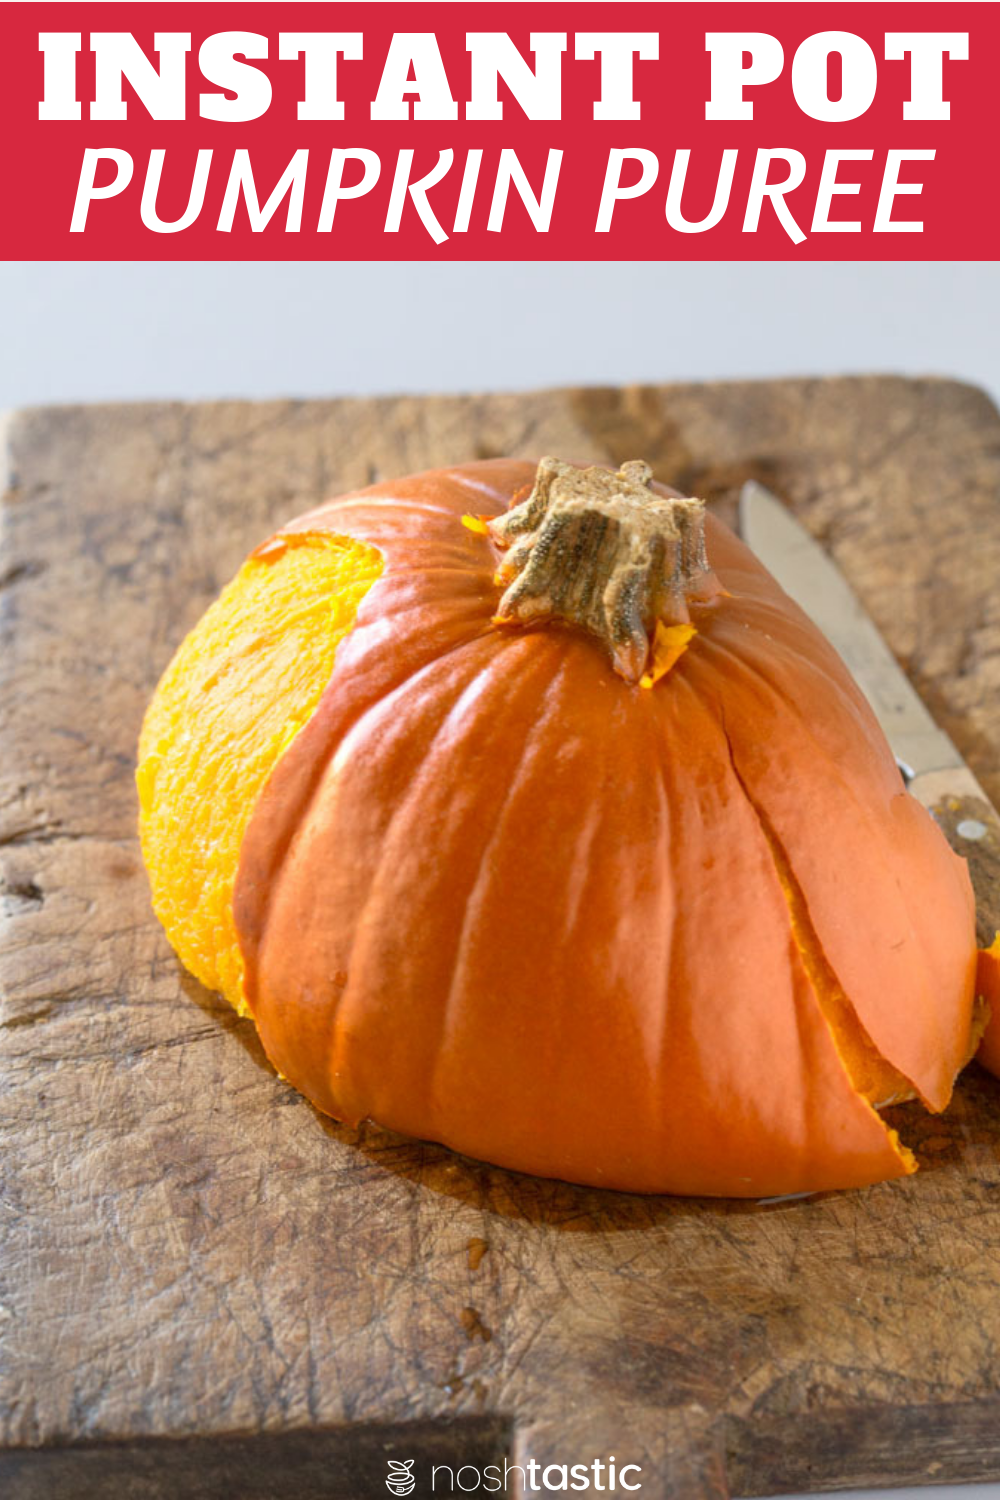 Easy Pressure Cooker Whole Pumpkin, you won't believe how simple it is to cook!